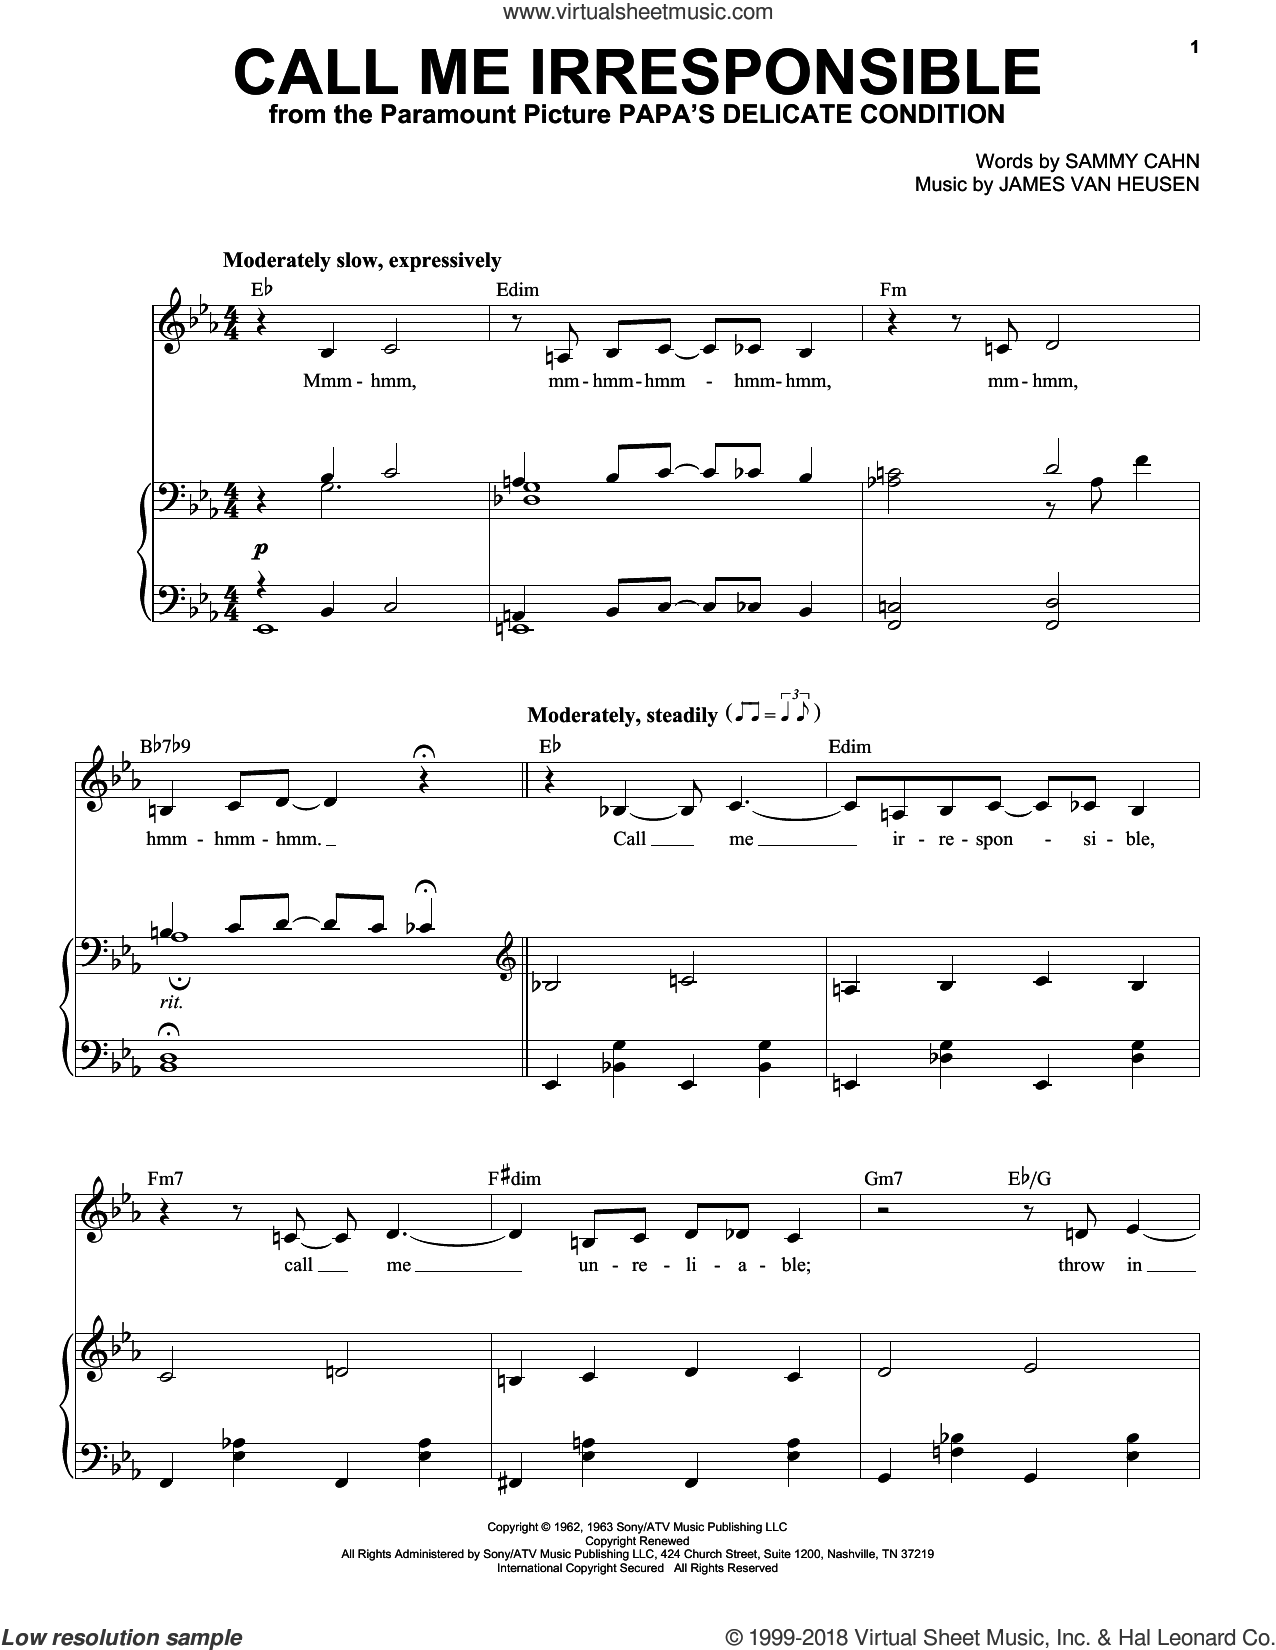 Call Me Irresponsible sheet music for voice and piano by Frank Sinatra, Dinah Washington, Jack Jones, Jimmy van Heusen and Sammy Cahn, intermediate skill level